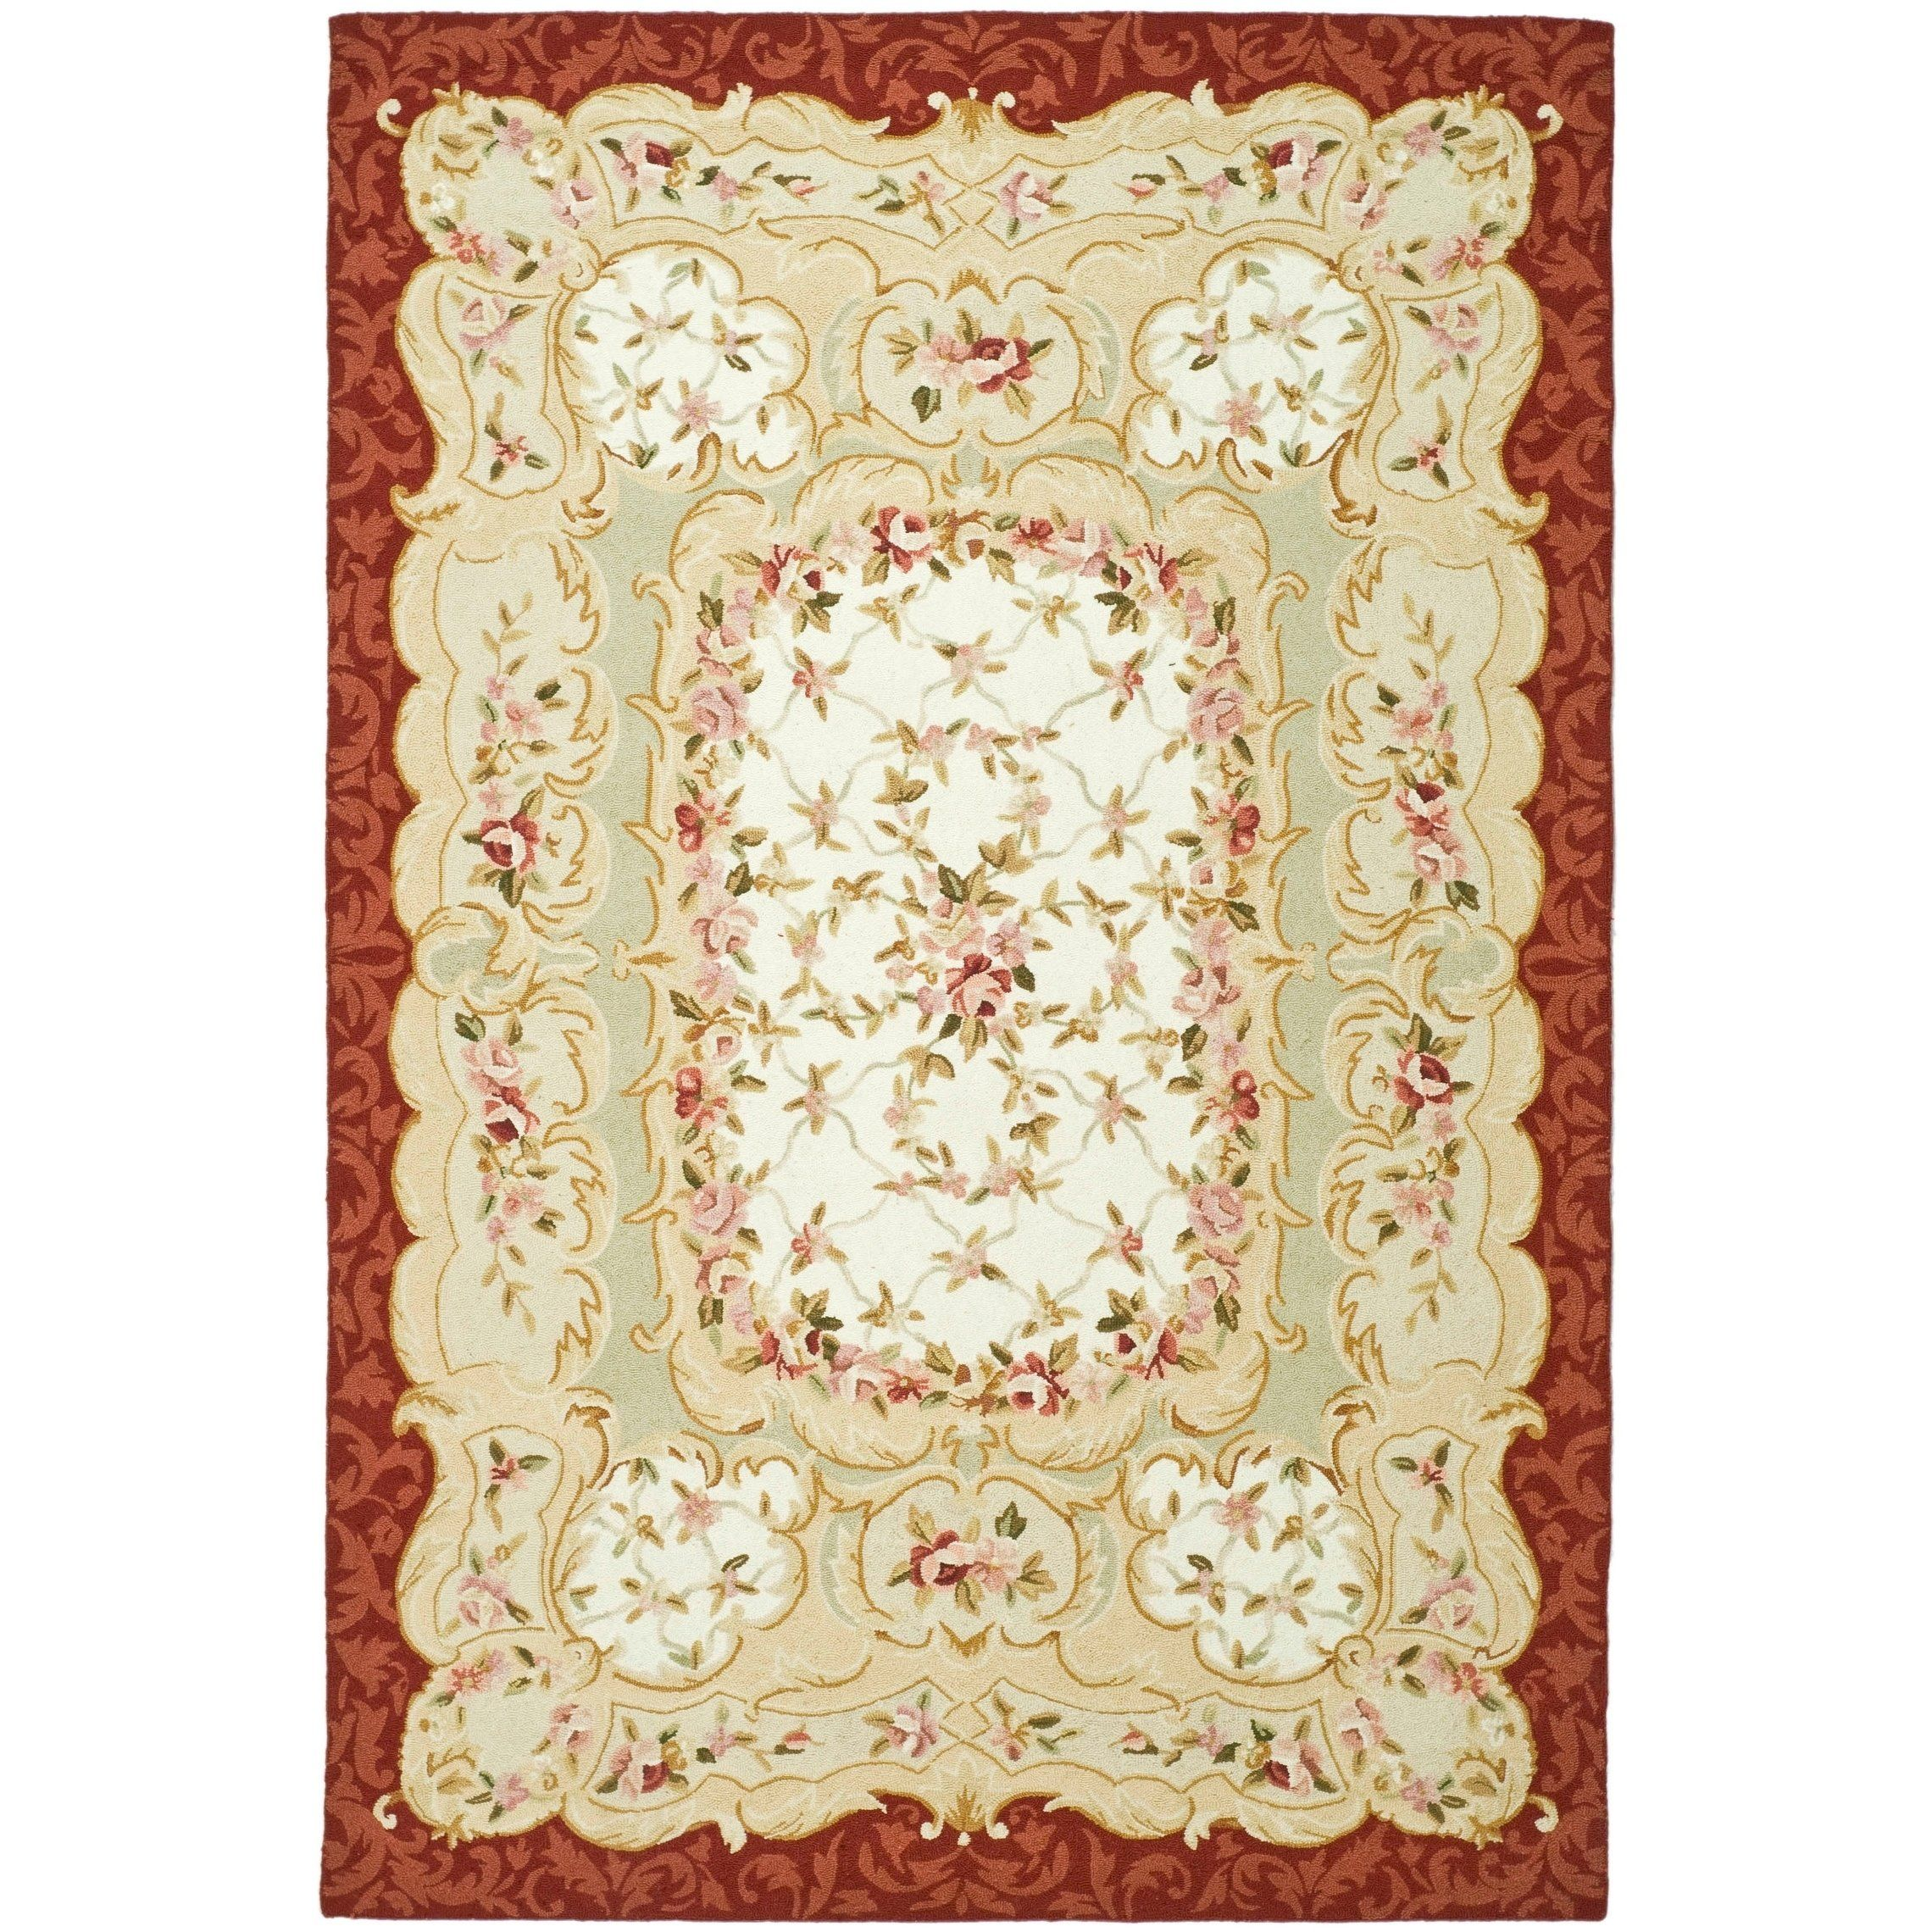 Safavieh Hand Hooked Aubusson Ivory Burgundy 100 Percent Wool Rug